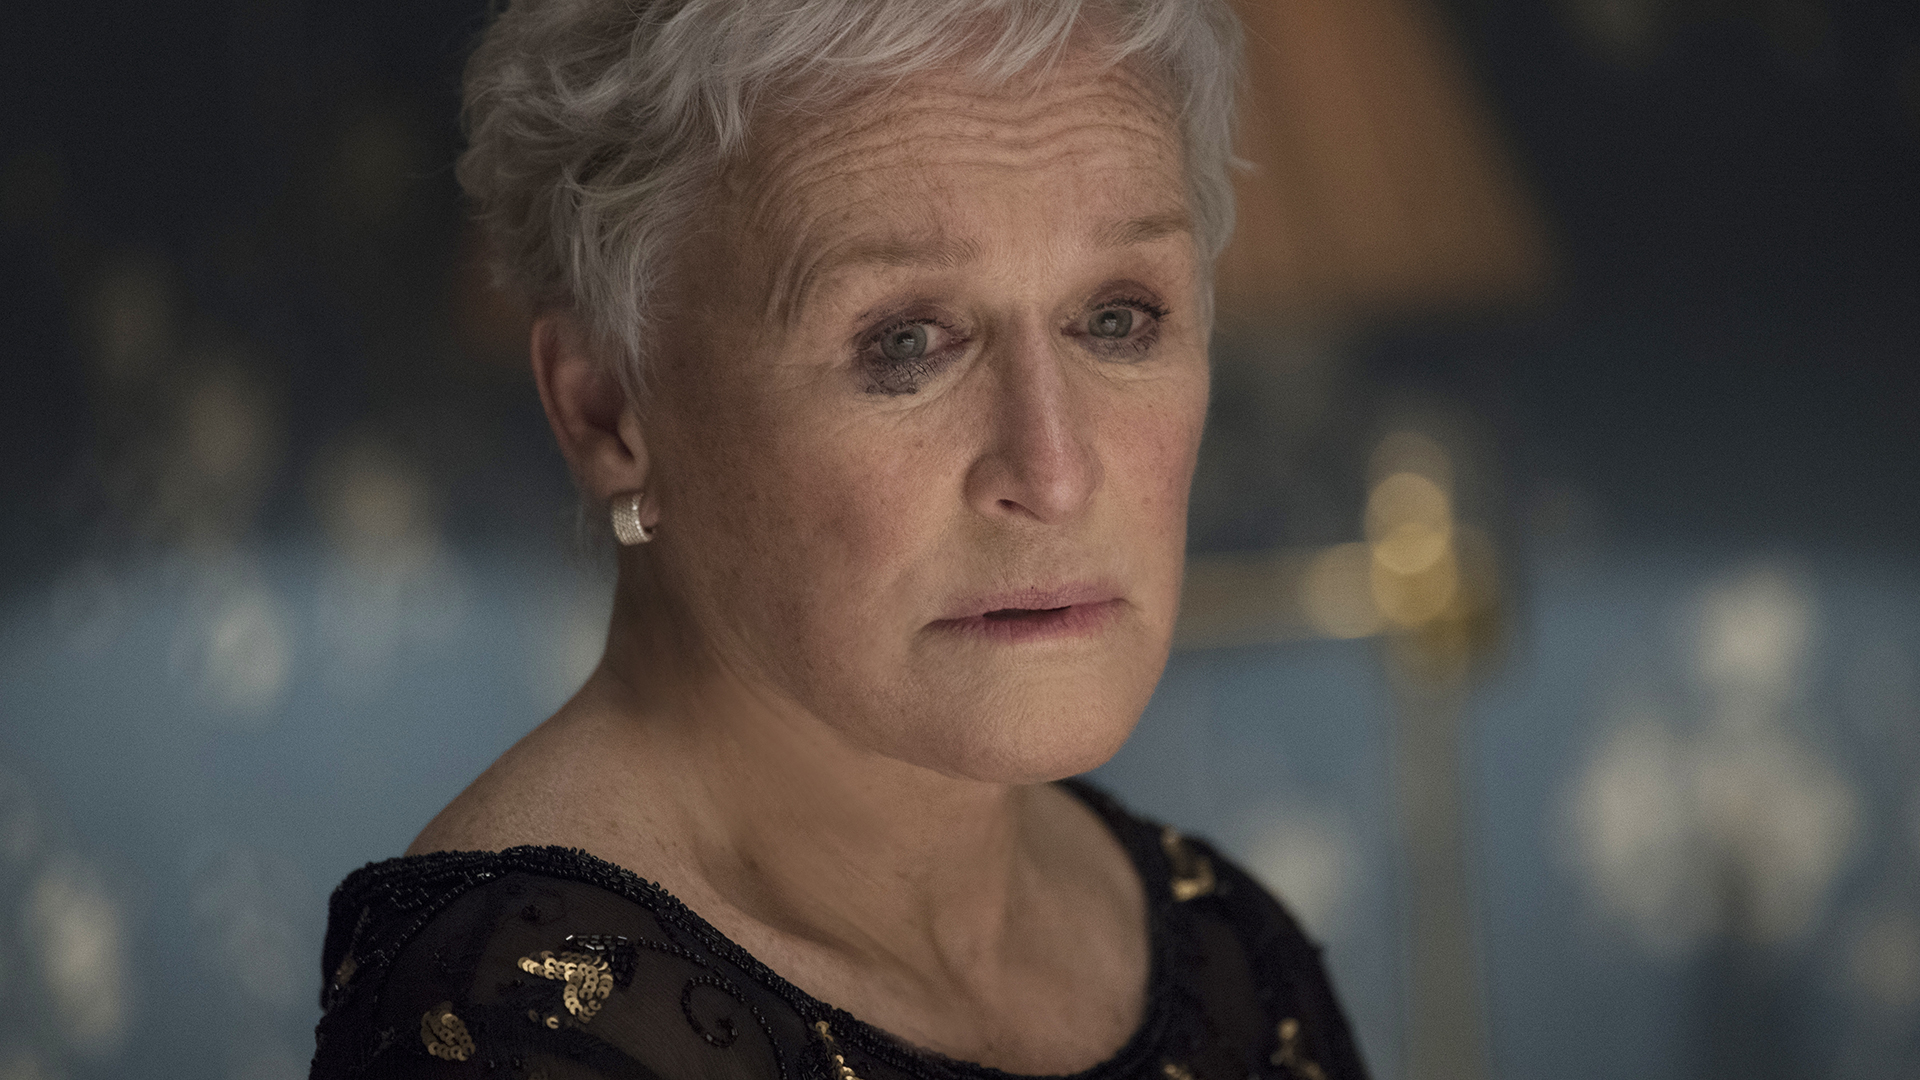 Review: Glenn Close is stupendous in 'The Wife'